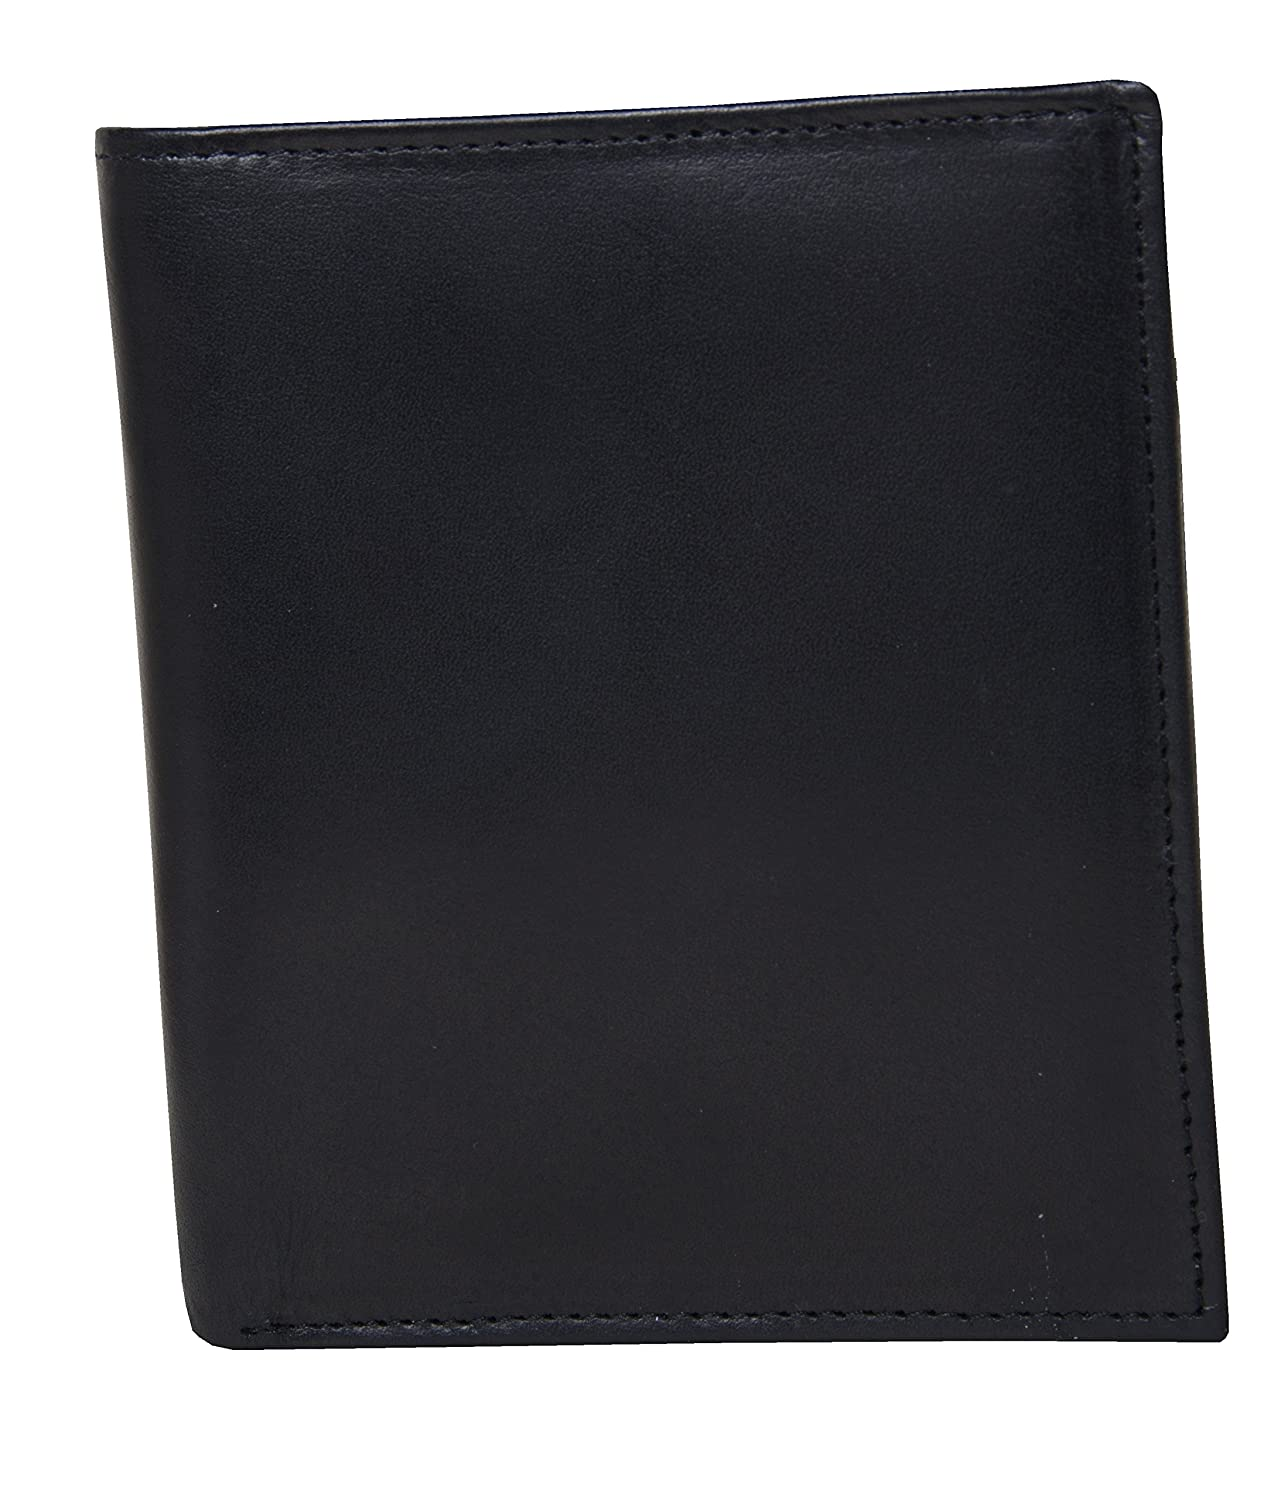 Mens Black Leather Bifold Hipster Wallet With RFID Blocking Technology In Box